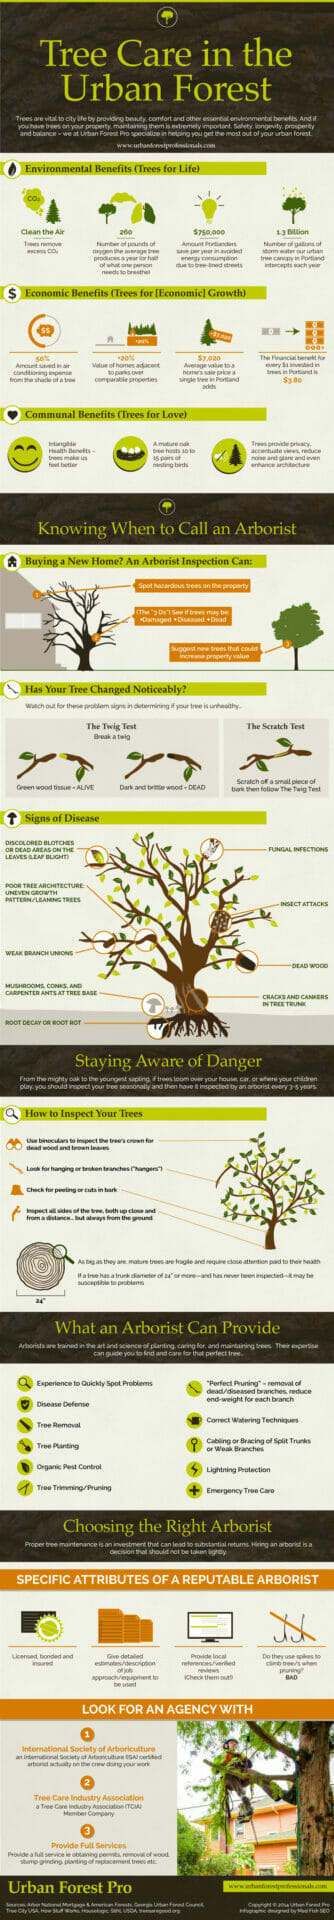 Tree care in the Urban Forest (infographic)